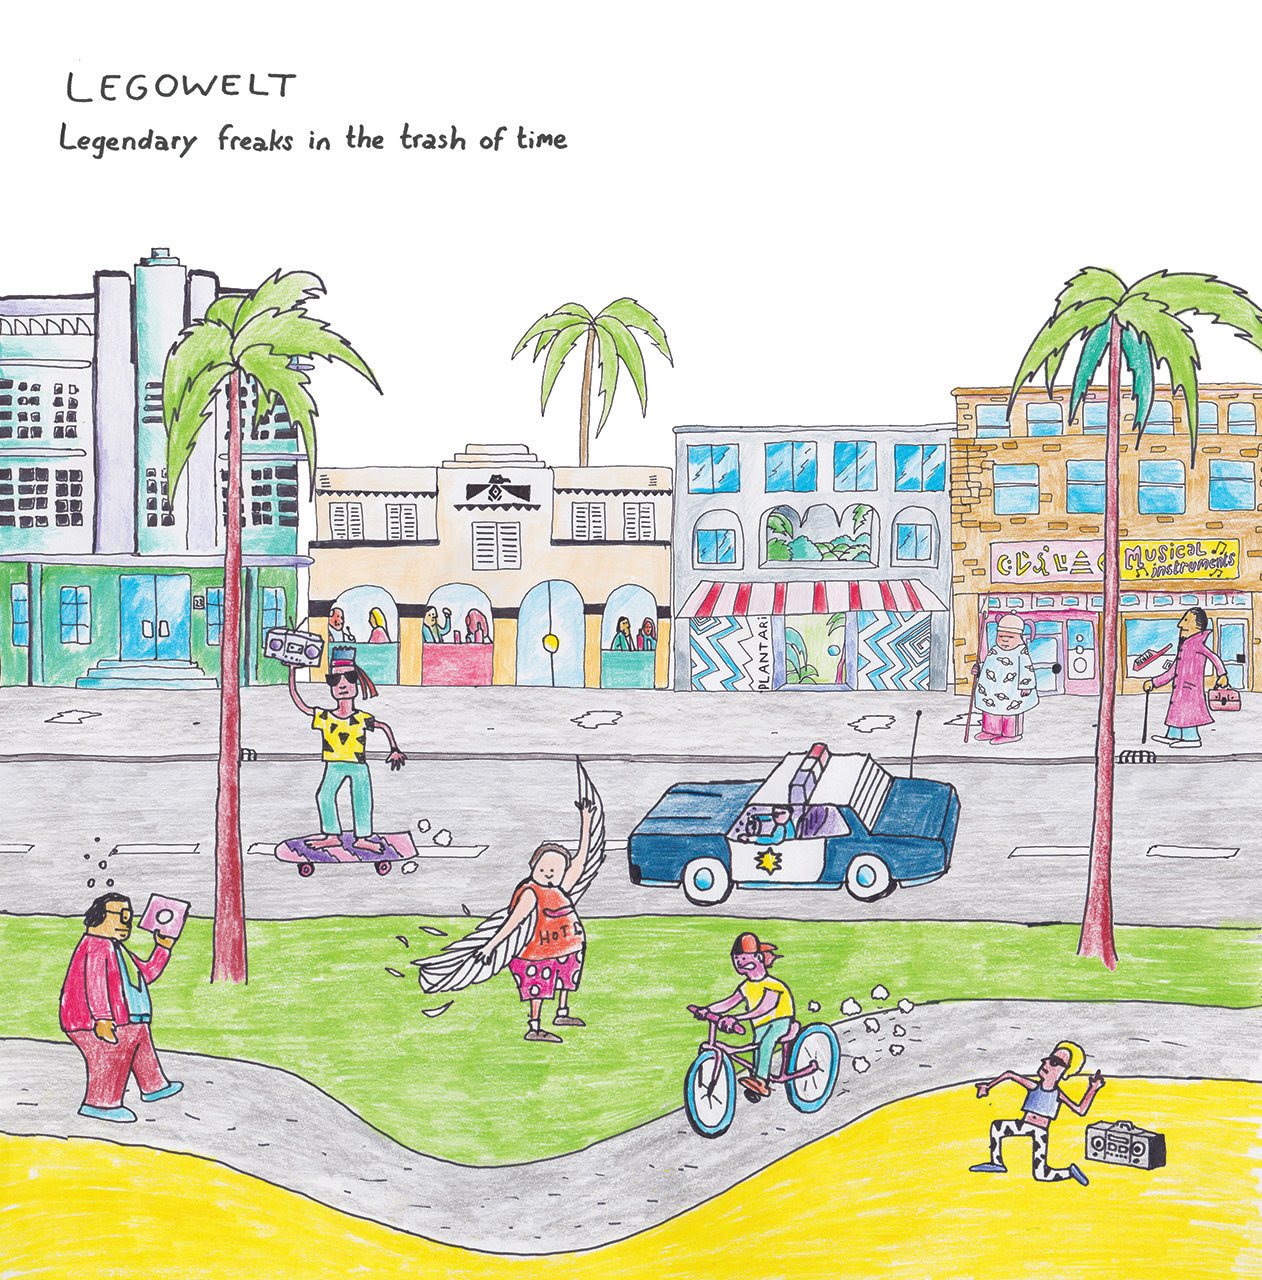 Legowelt announces Legendary Freaks In The Trash Of Time album and tour